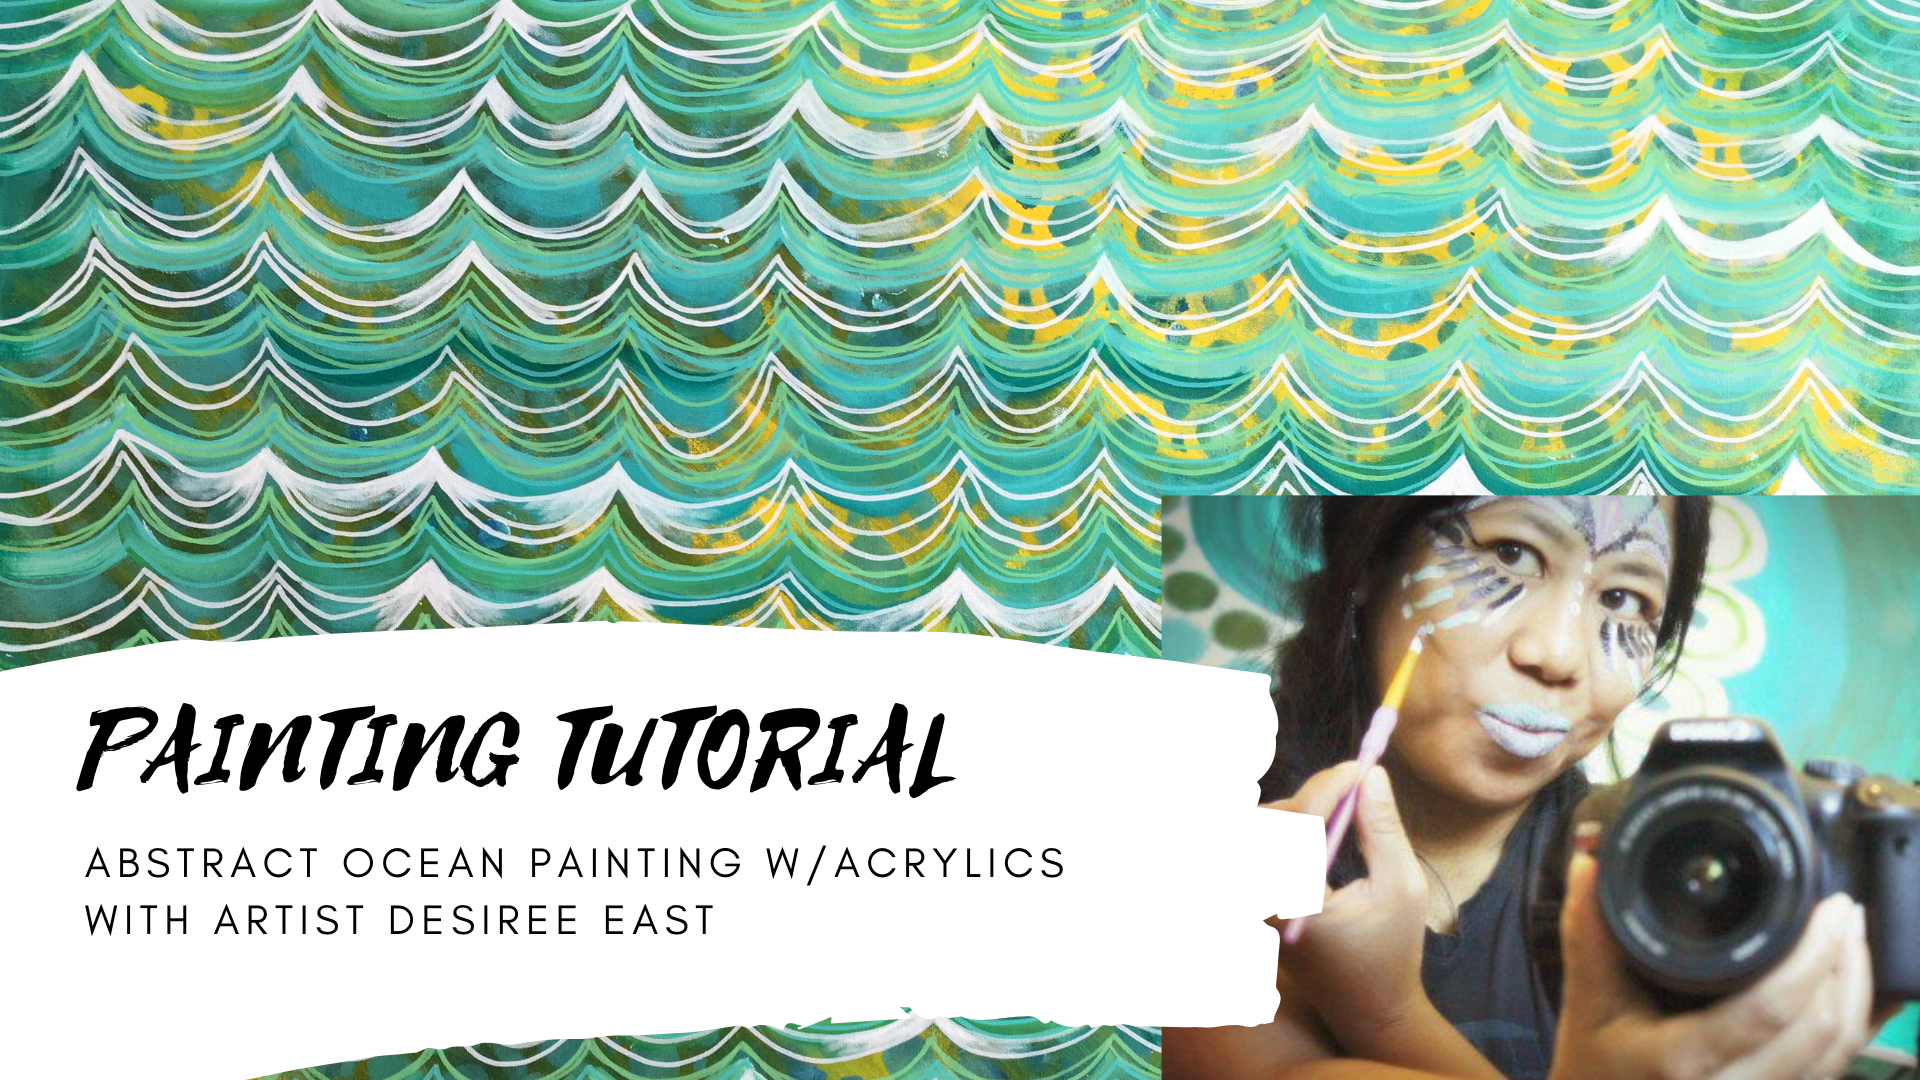 painting tutorial abstract ocean art painting with acrylics painting lesson by artist and creativity coach desiree east